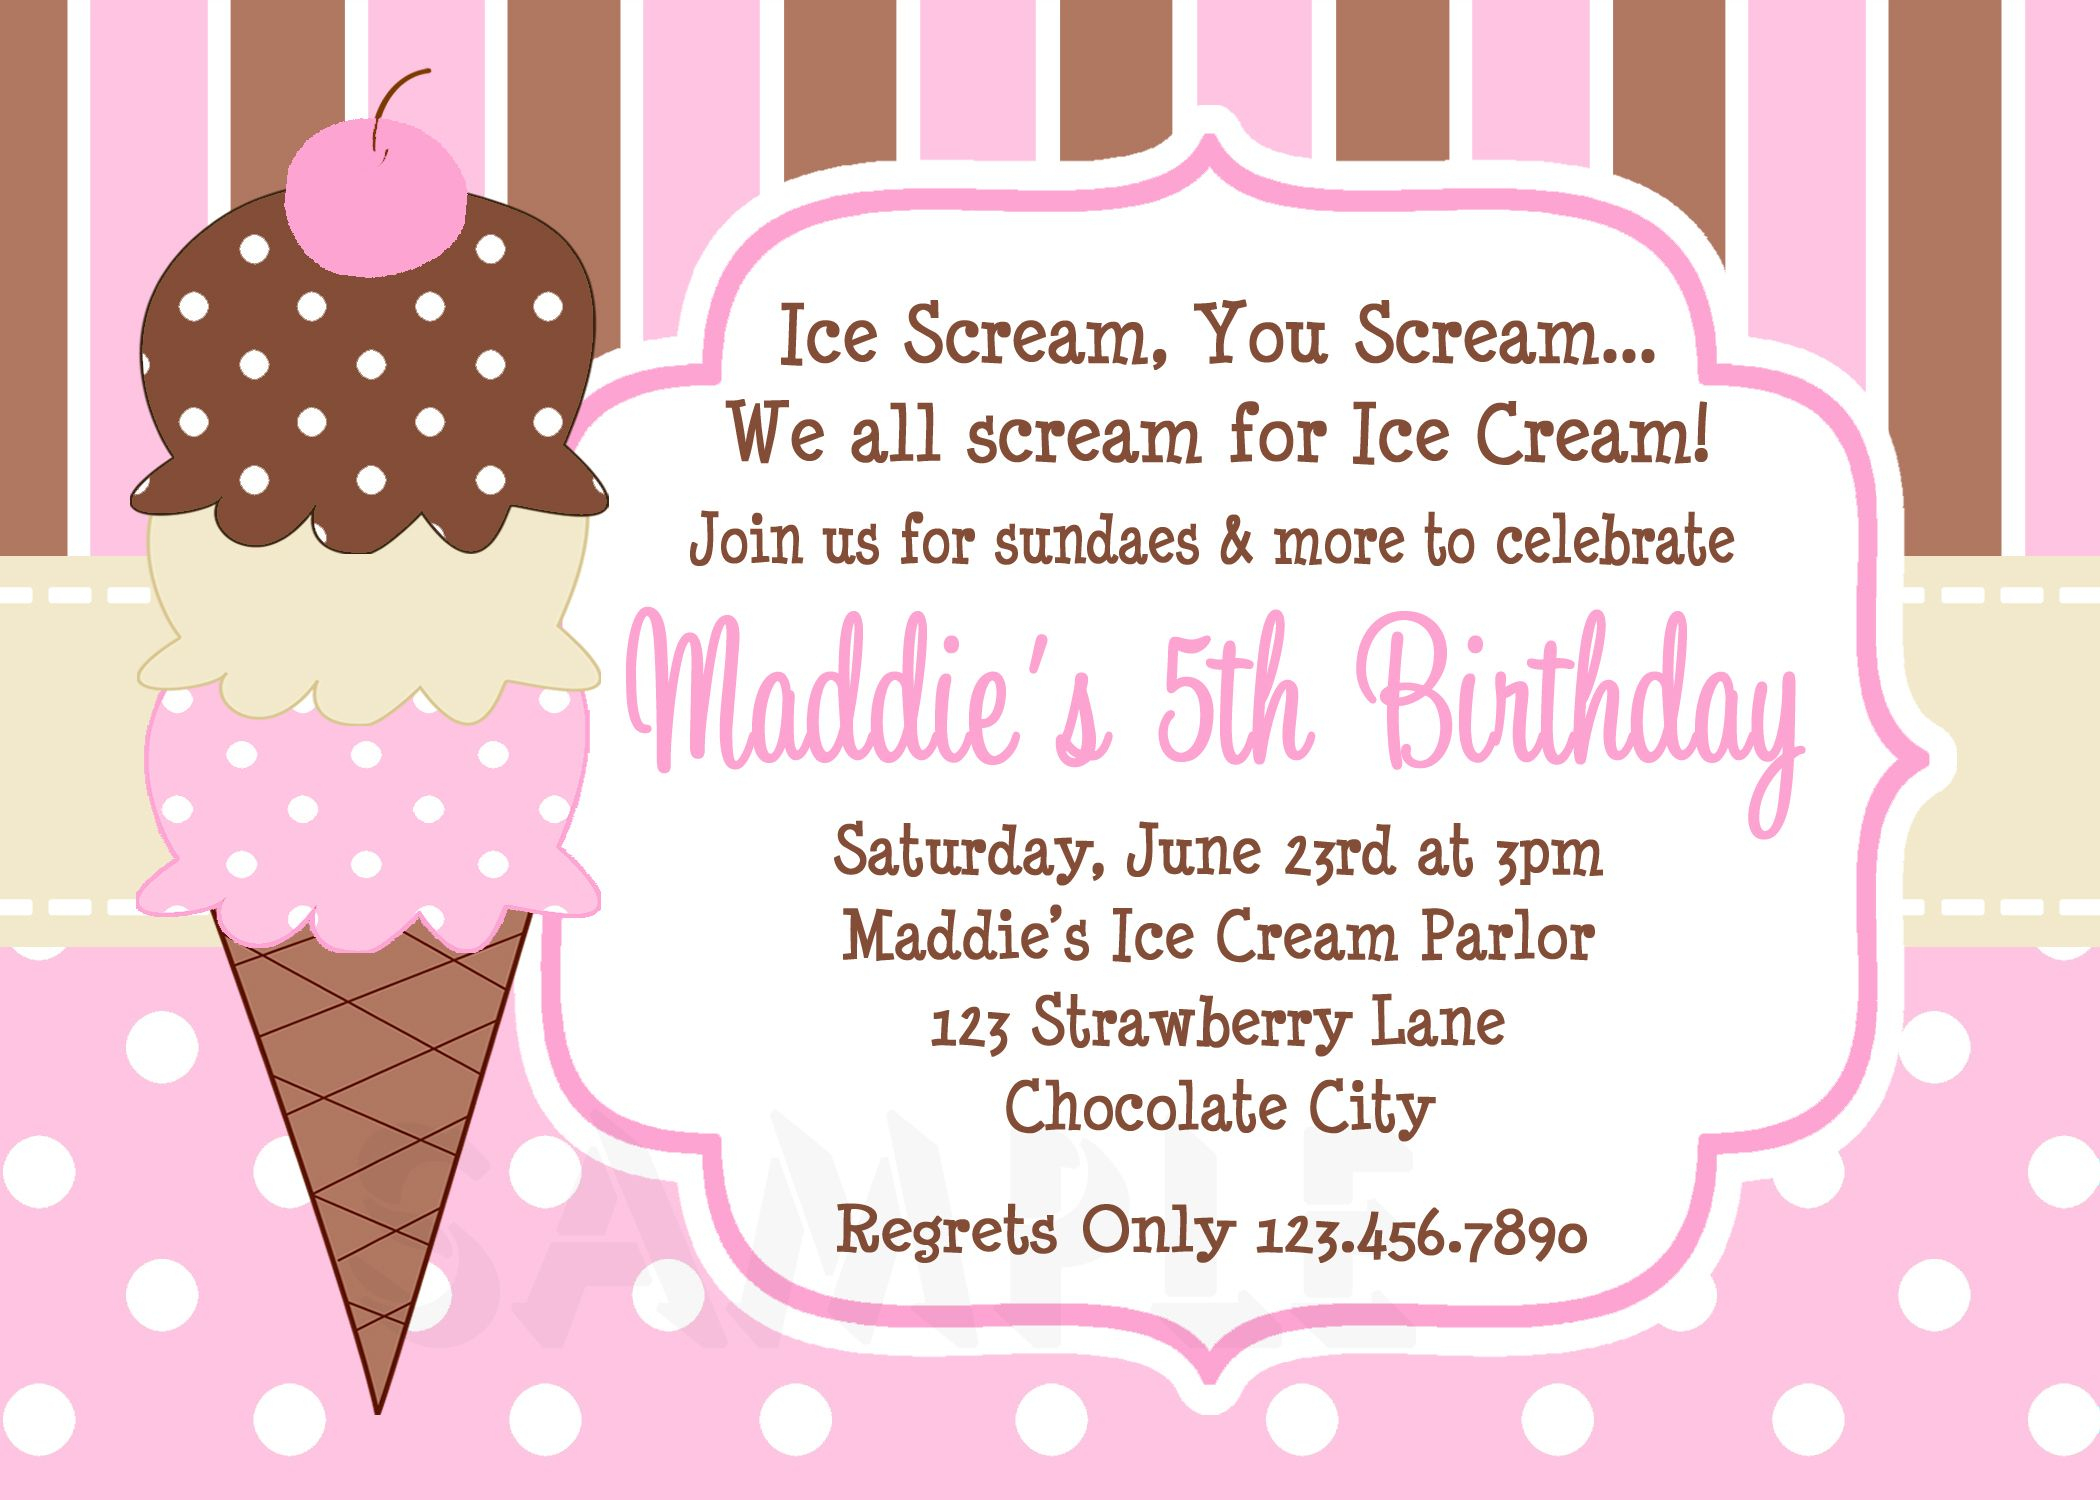 Cool Free Template Ice Cream Birthday Party Invitations | Bagvania - Ice Cream Party Invitations Printable Free